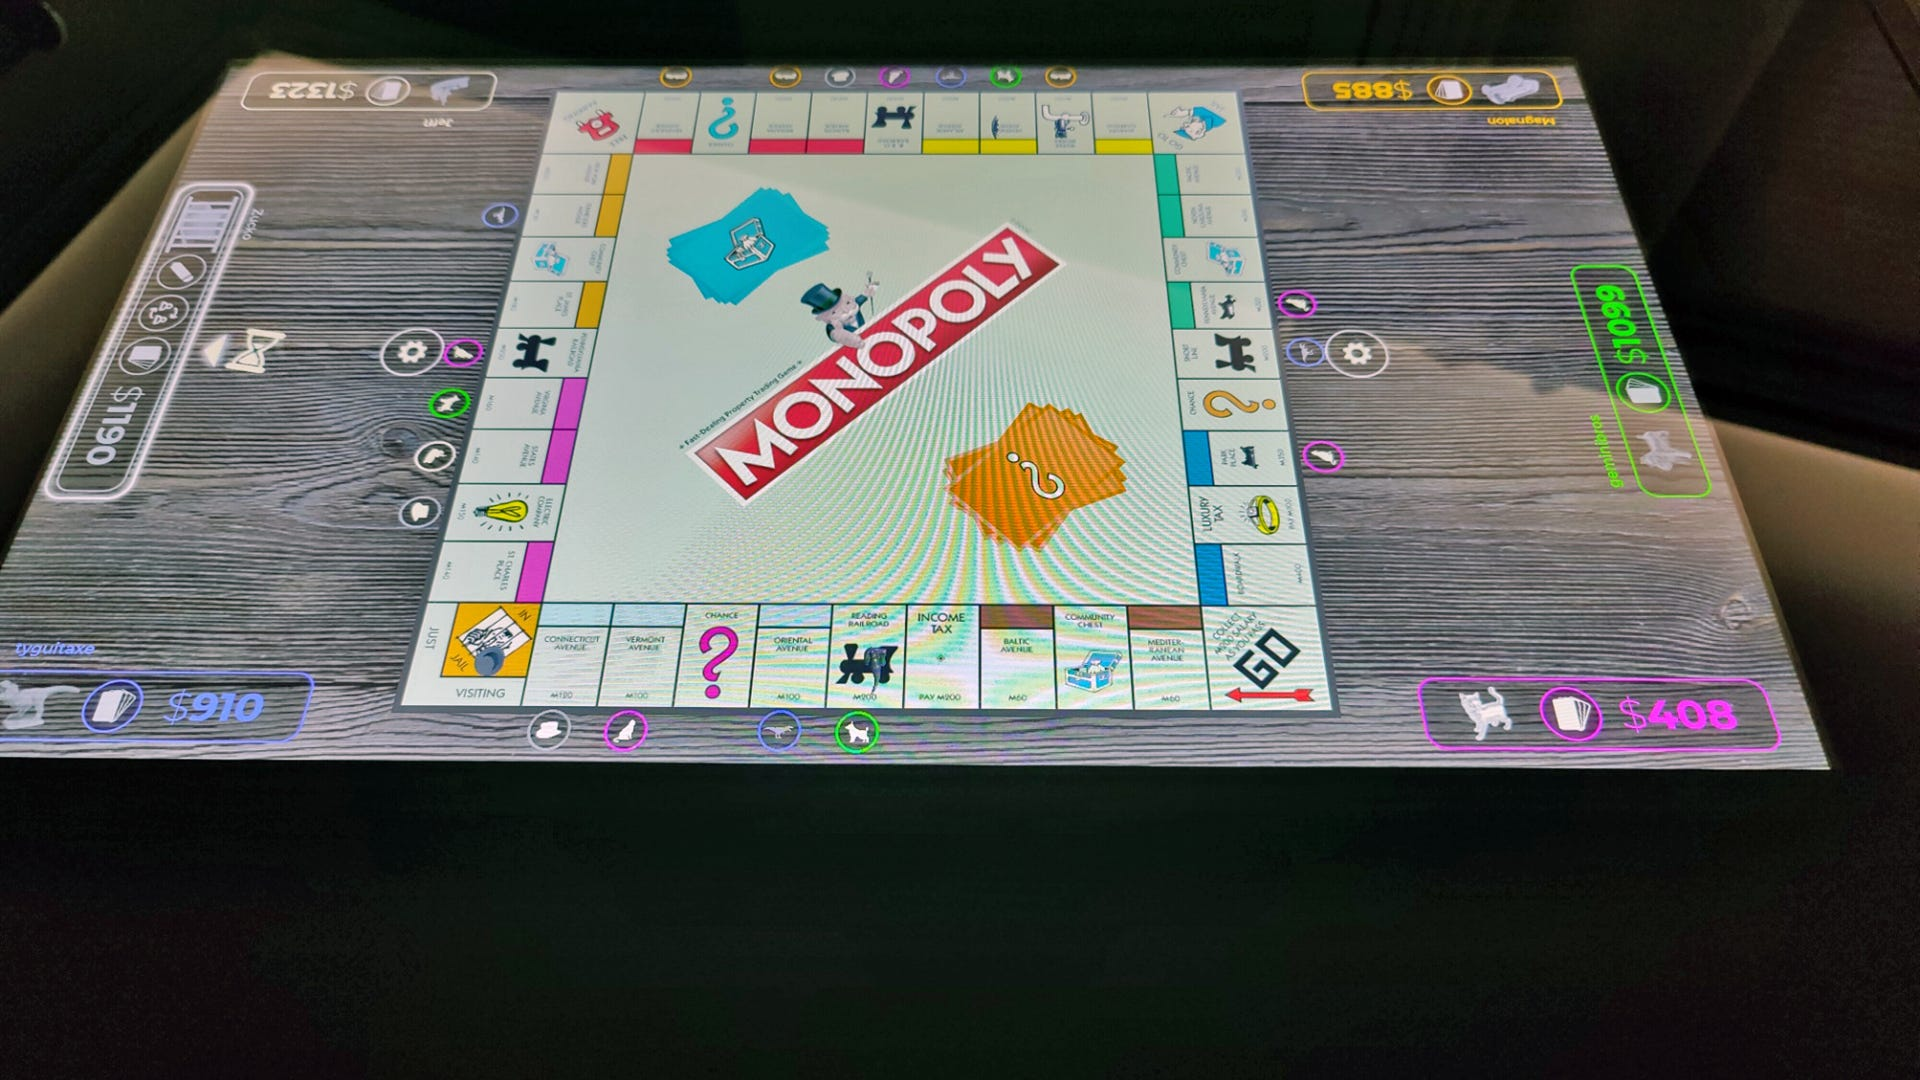 A game of Monopoly on a digital tablet